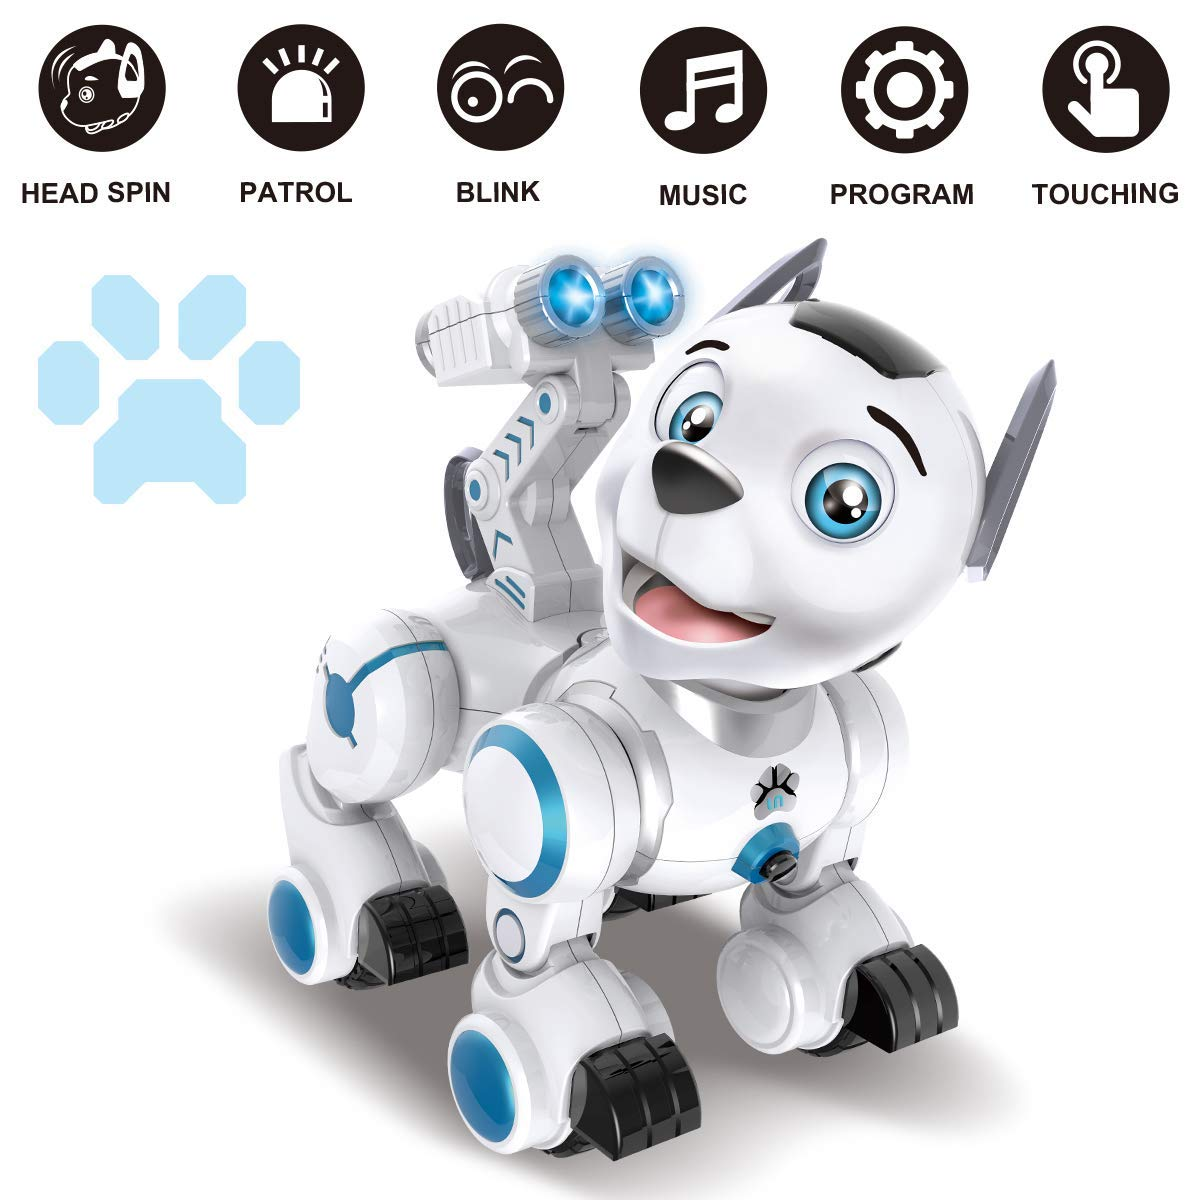 Bsmart toys Intelligent Hi-Tech Wireless Robot Dog ,Remote Control Educational Puppy Pet Best Birthday Gift for 5,6,7,8,9 Years Boys and Girls Interactive Robotic Friend by Bsmart toys (Image #4)